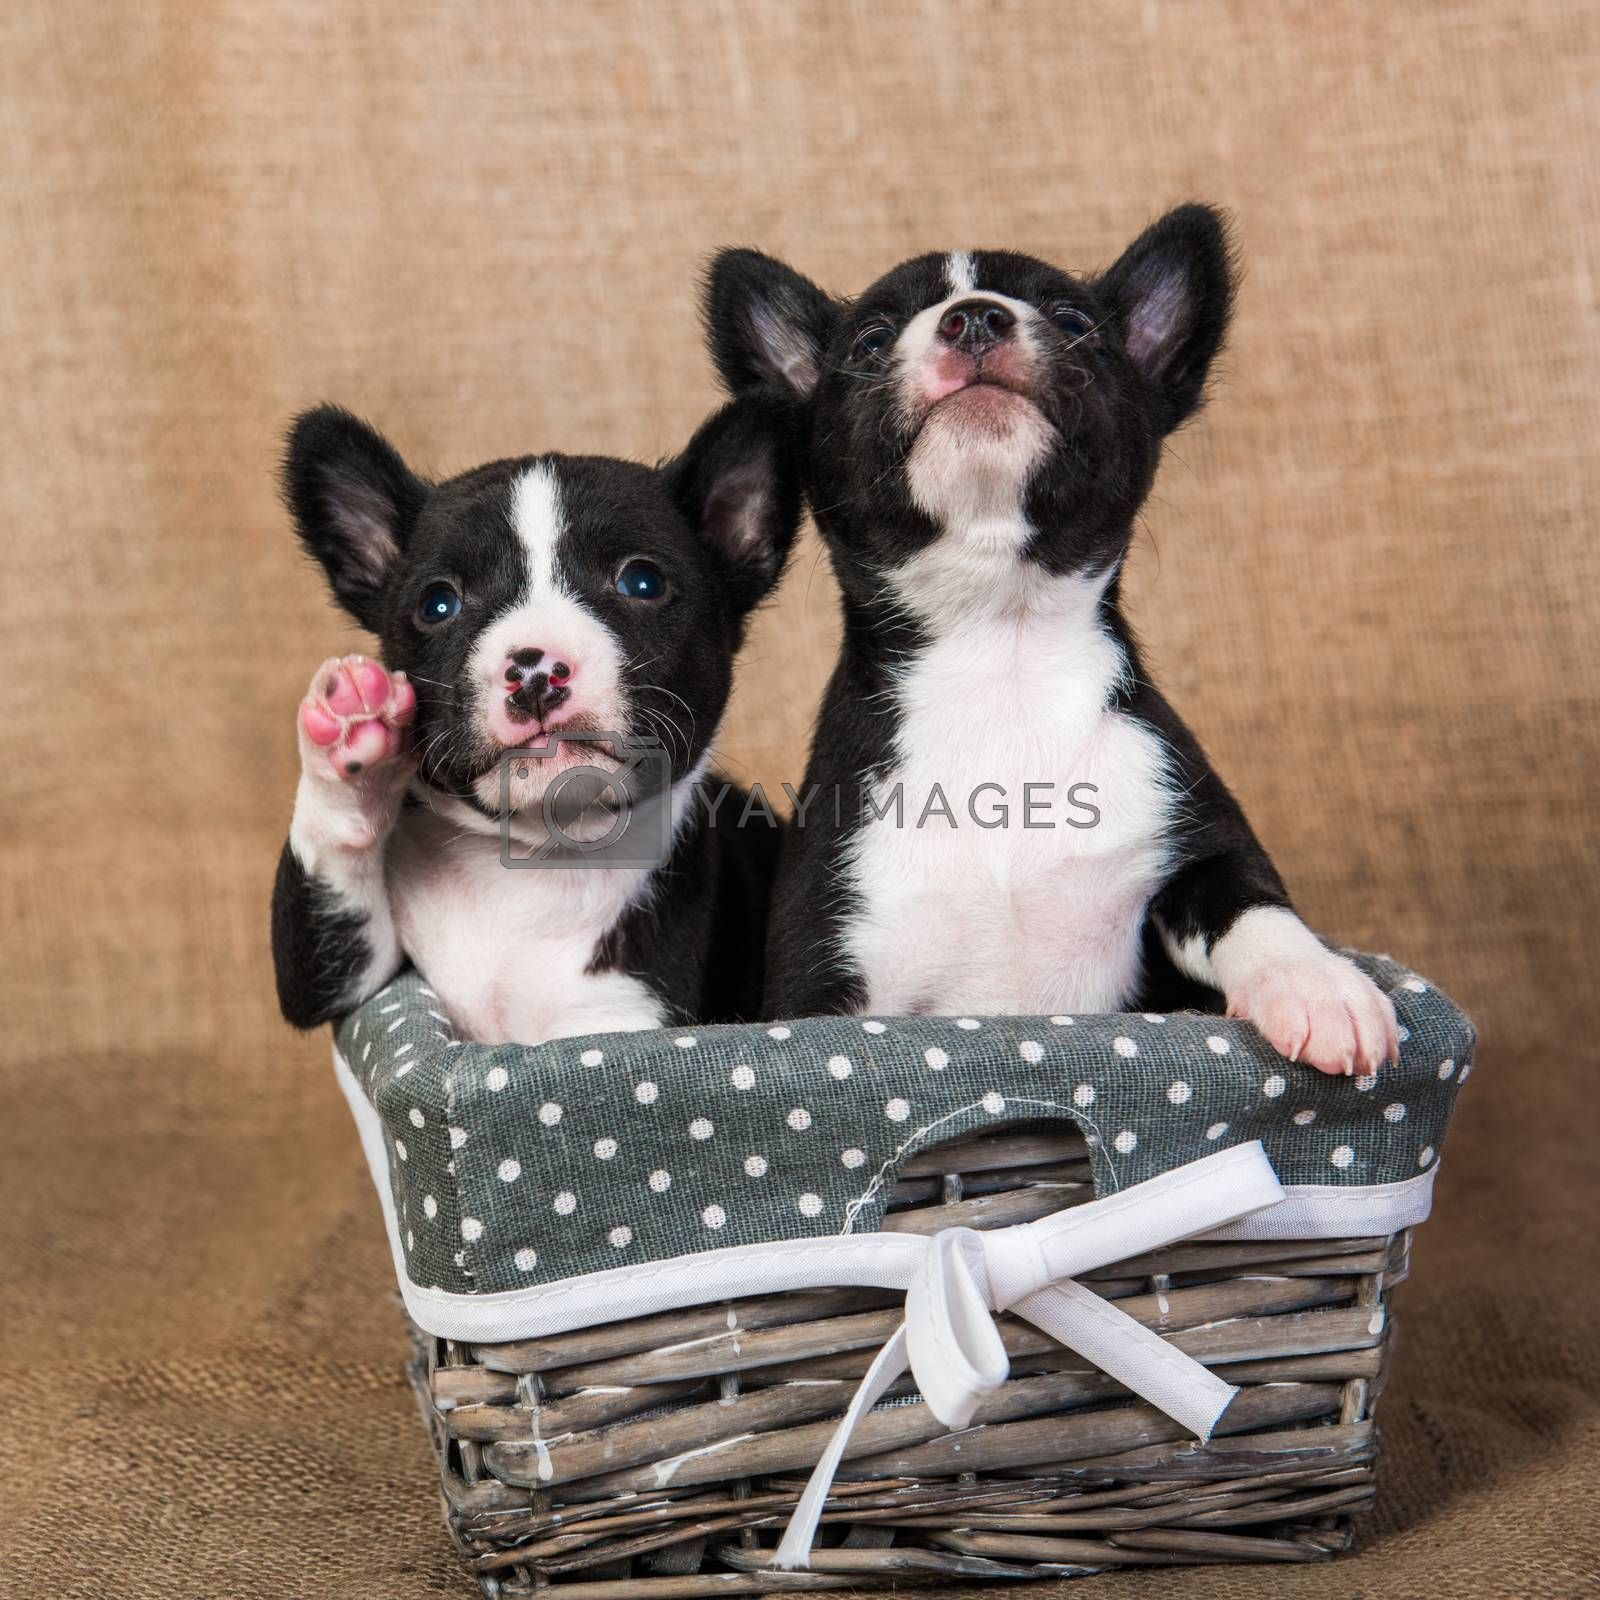 Two Funny small babies Basenji puppies dogs on Sackcloth background, greeting card